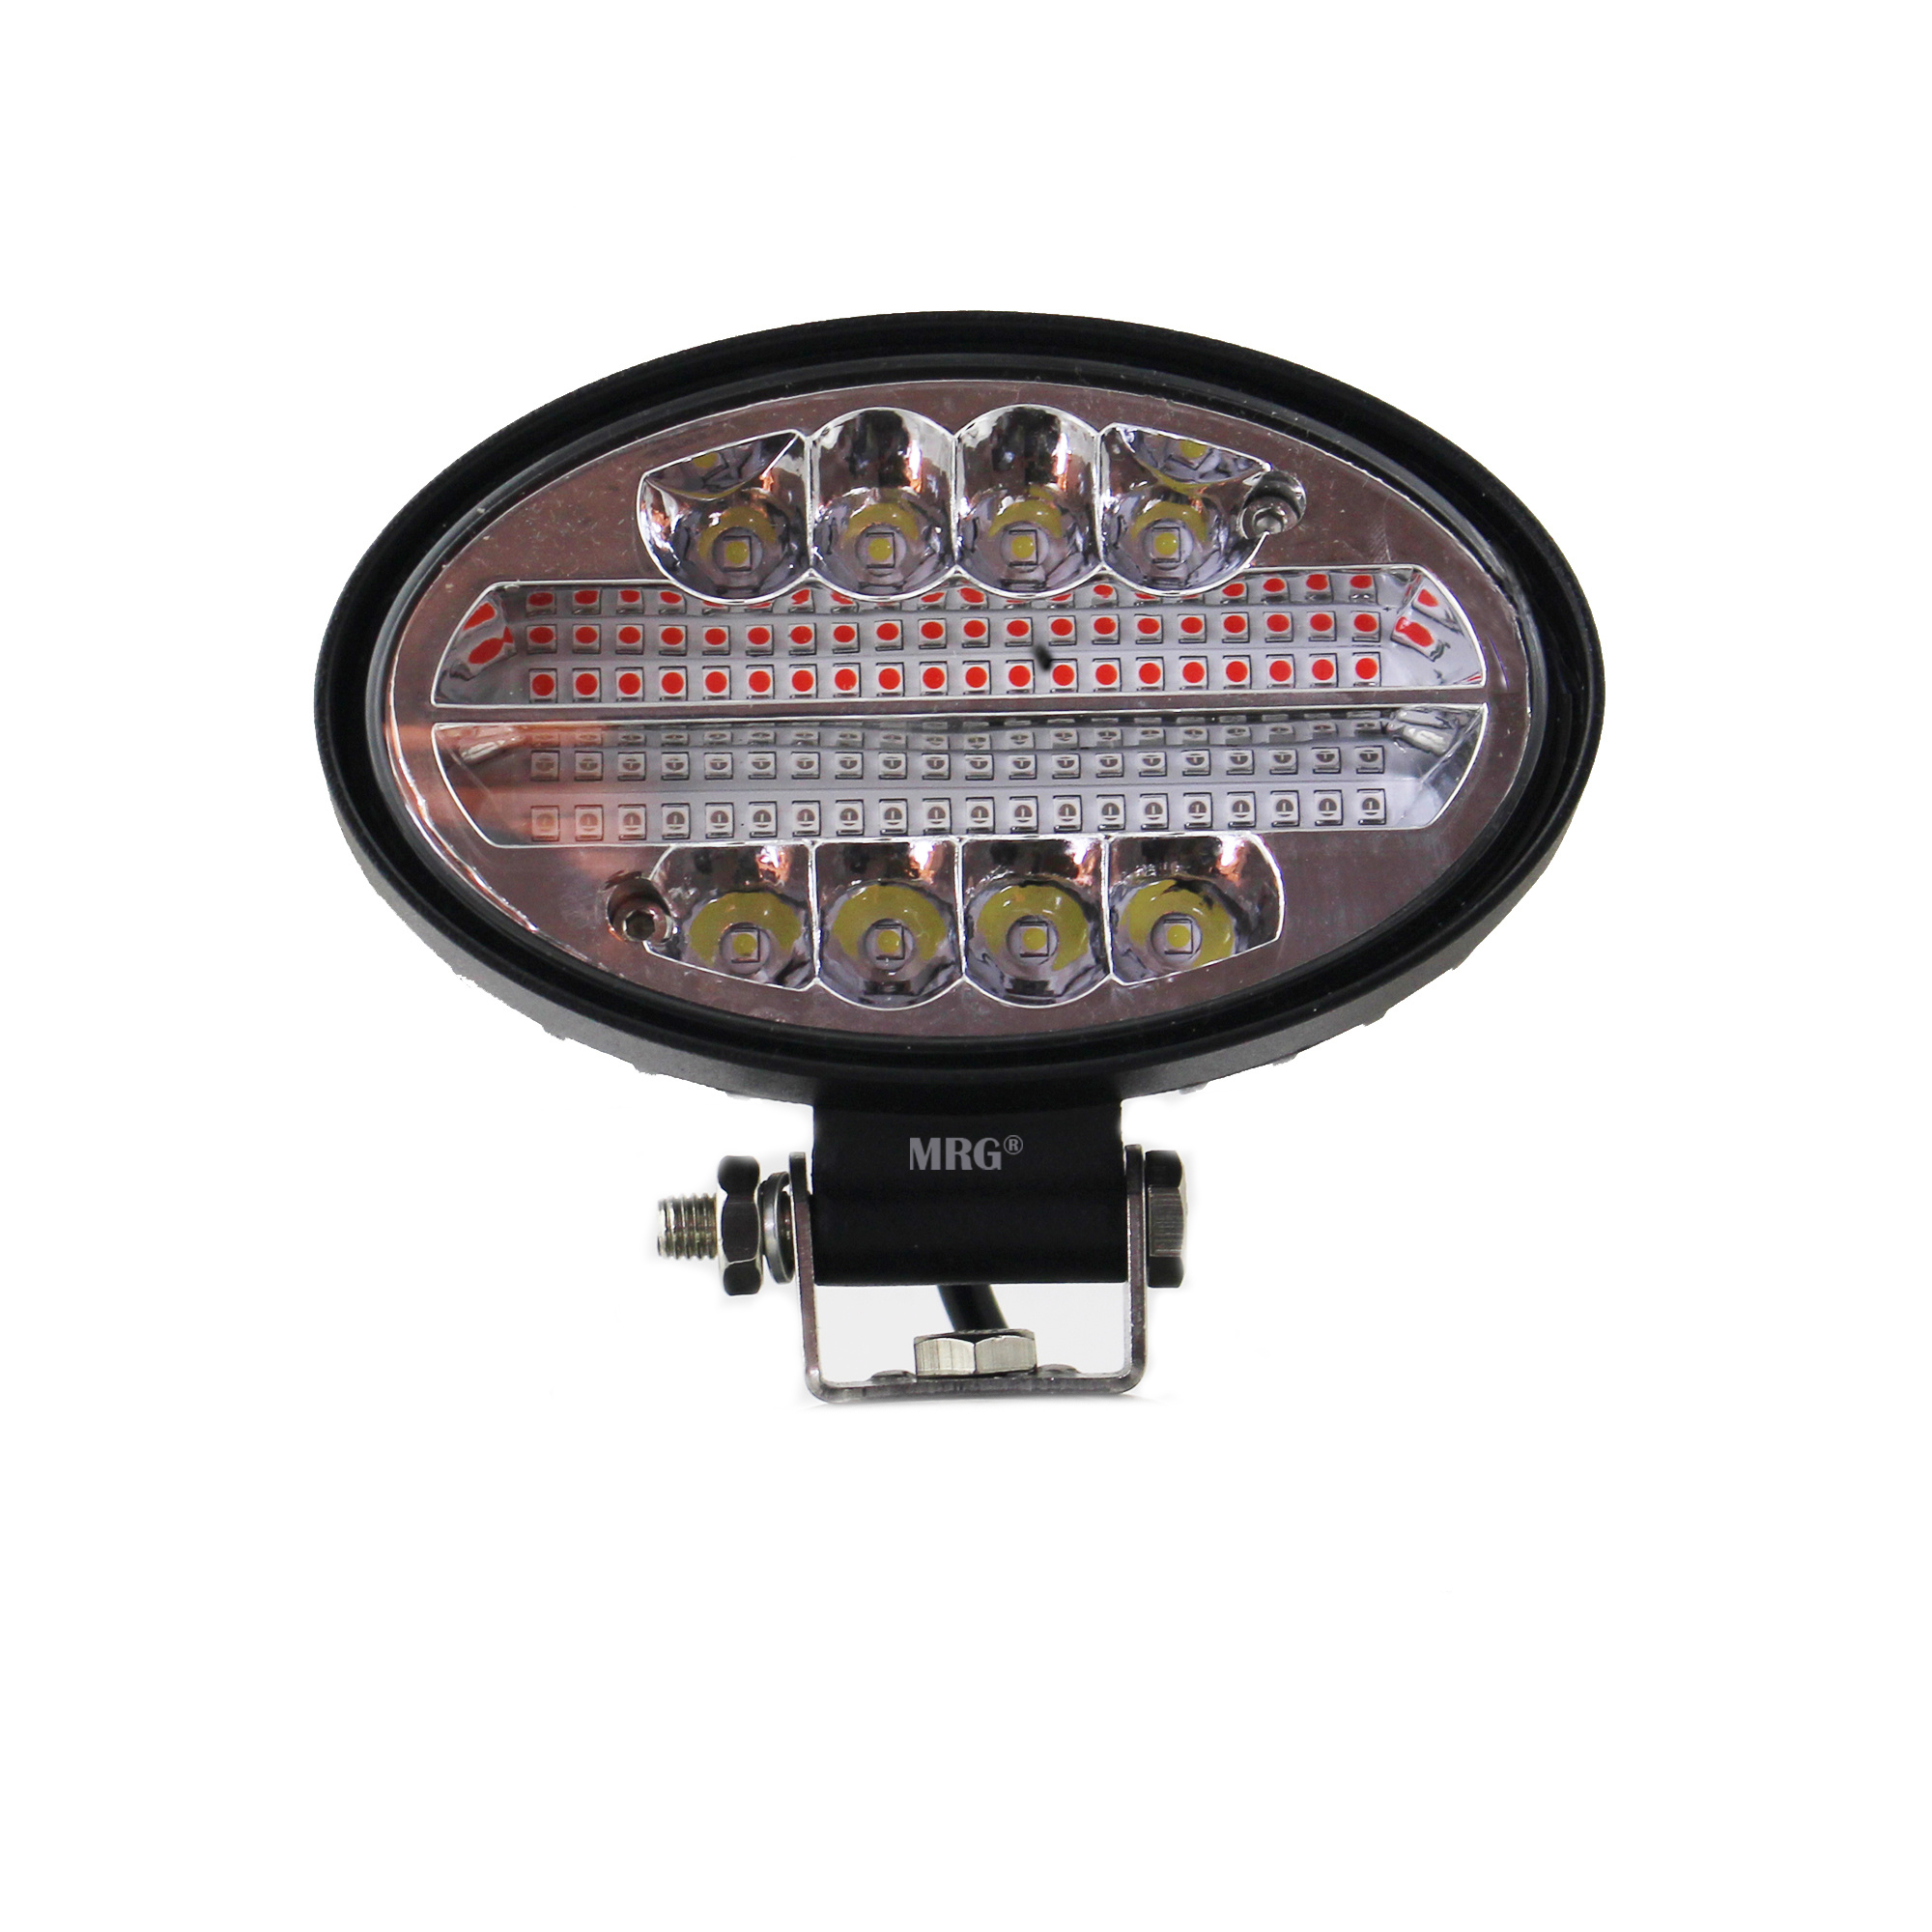 Proiector Auto Offroad MRG M-482, 48 LED, 144 W, LED Rosu / Alb